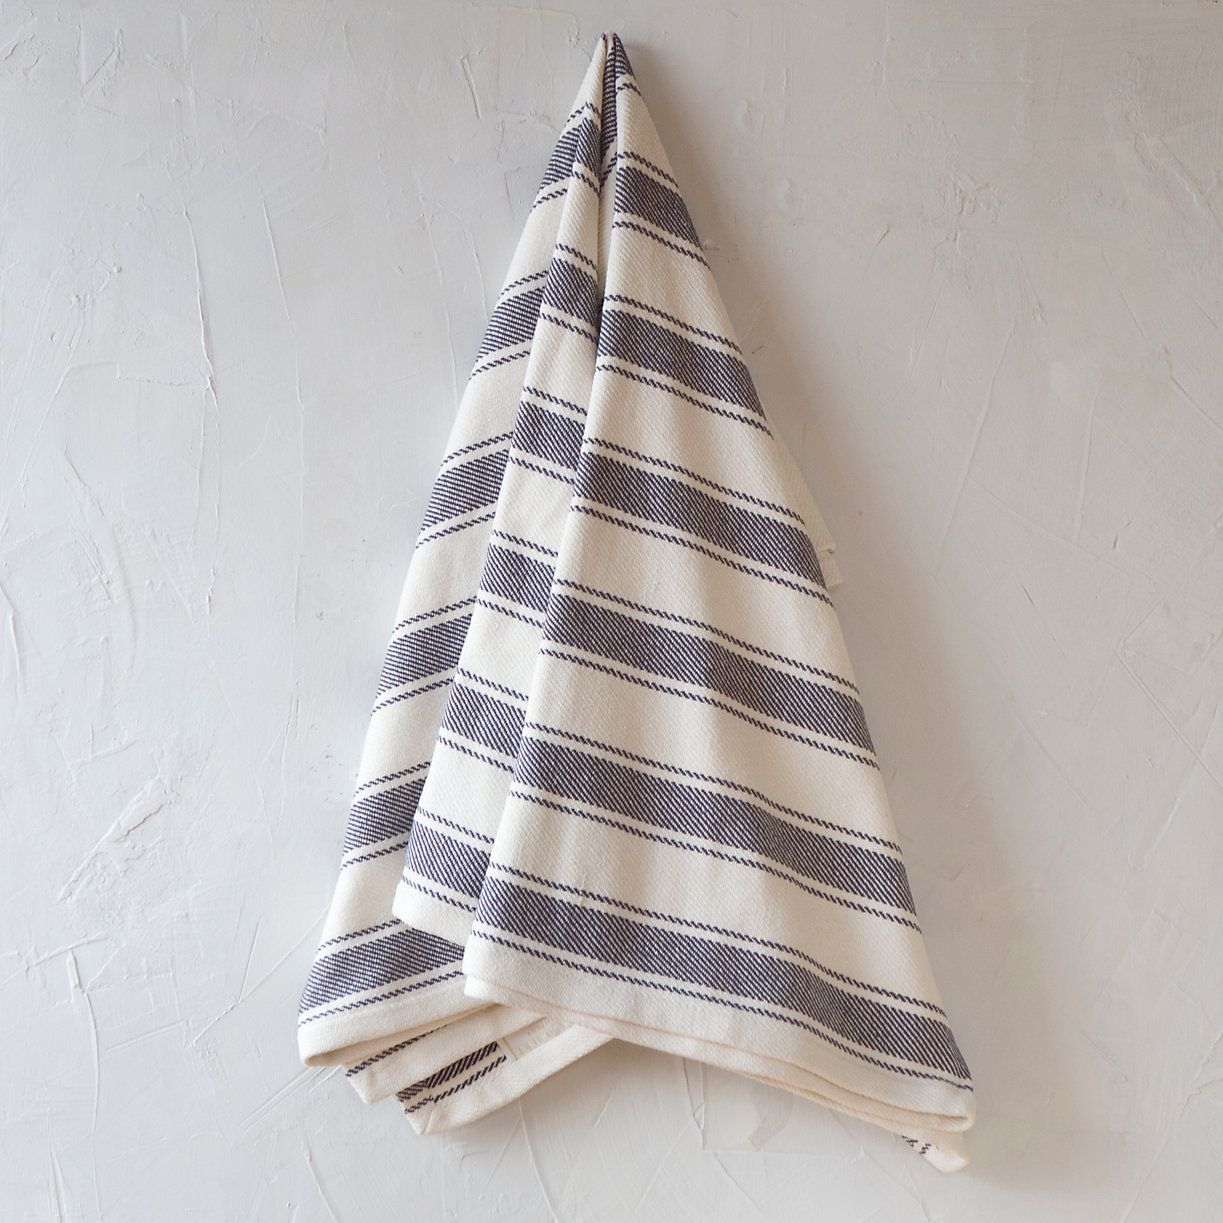 Awning Stripe Throw Throw Rugs Pillows Outdoor Living